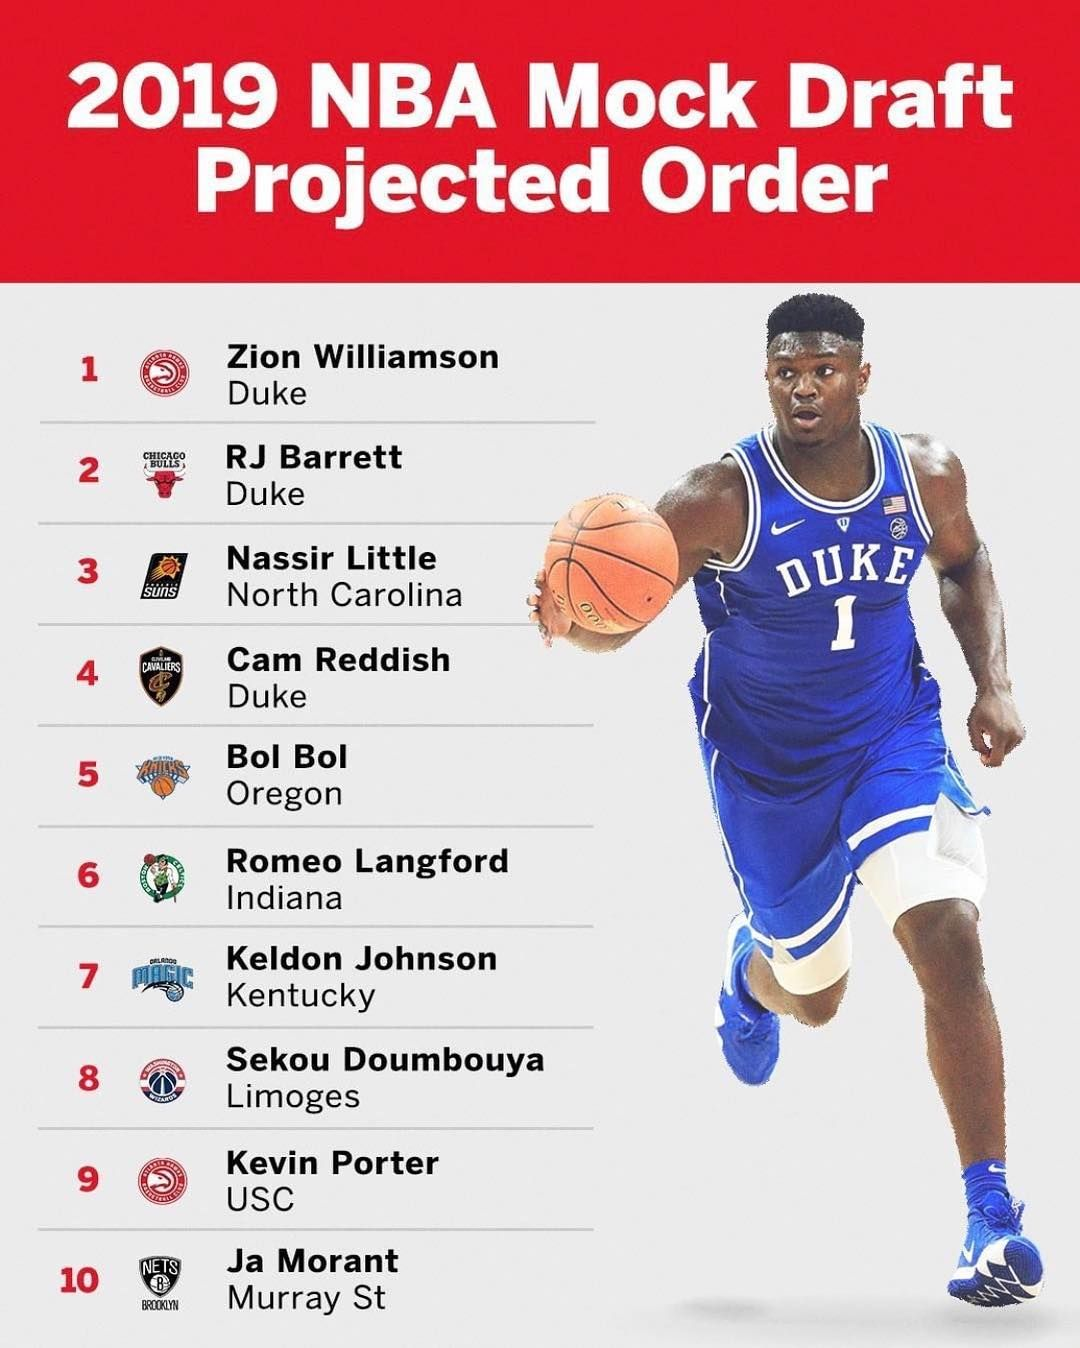 Here are the top 10 picks from our freshly updated 2019